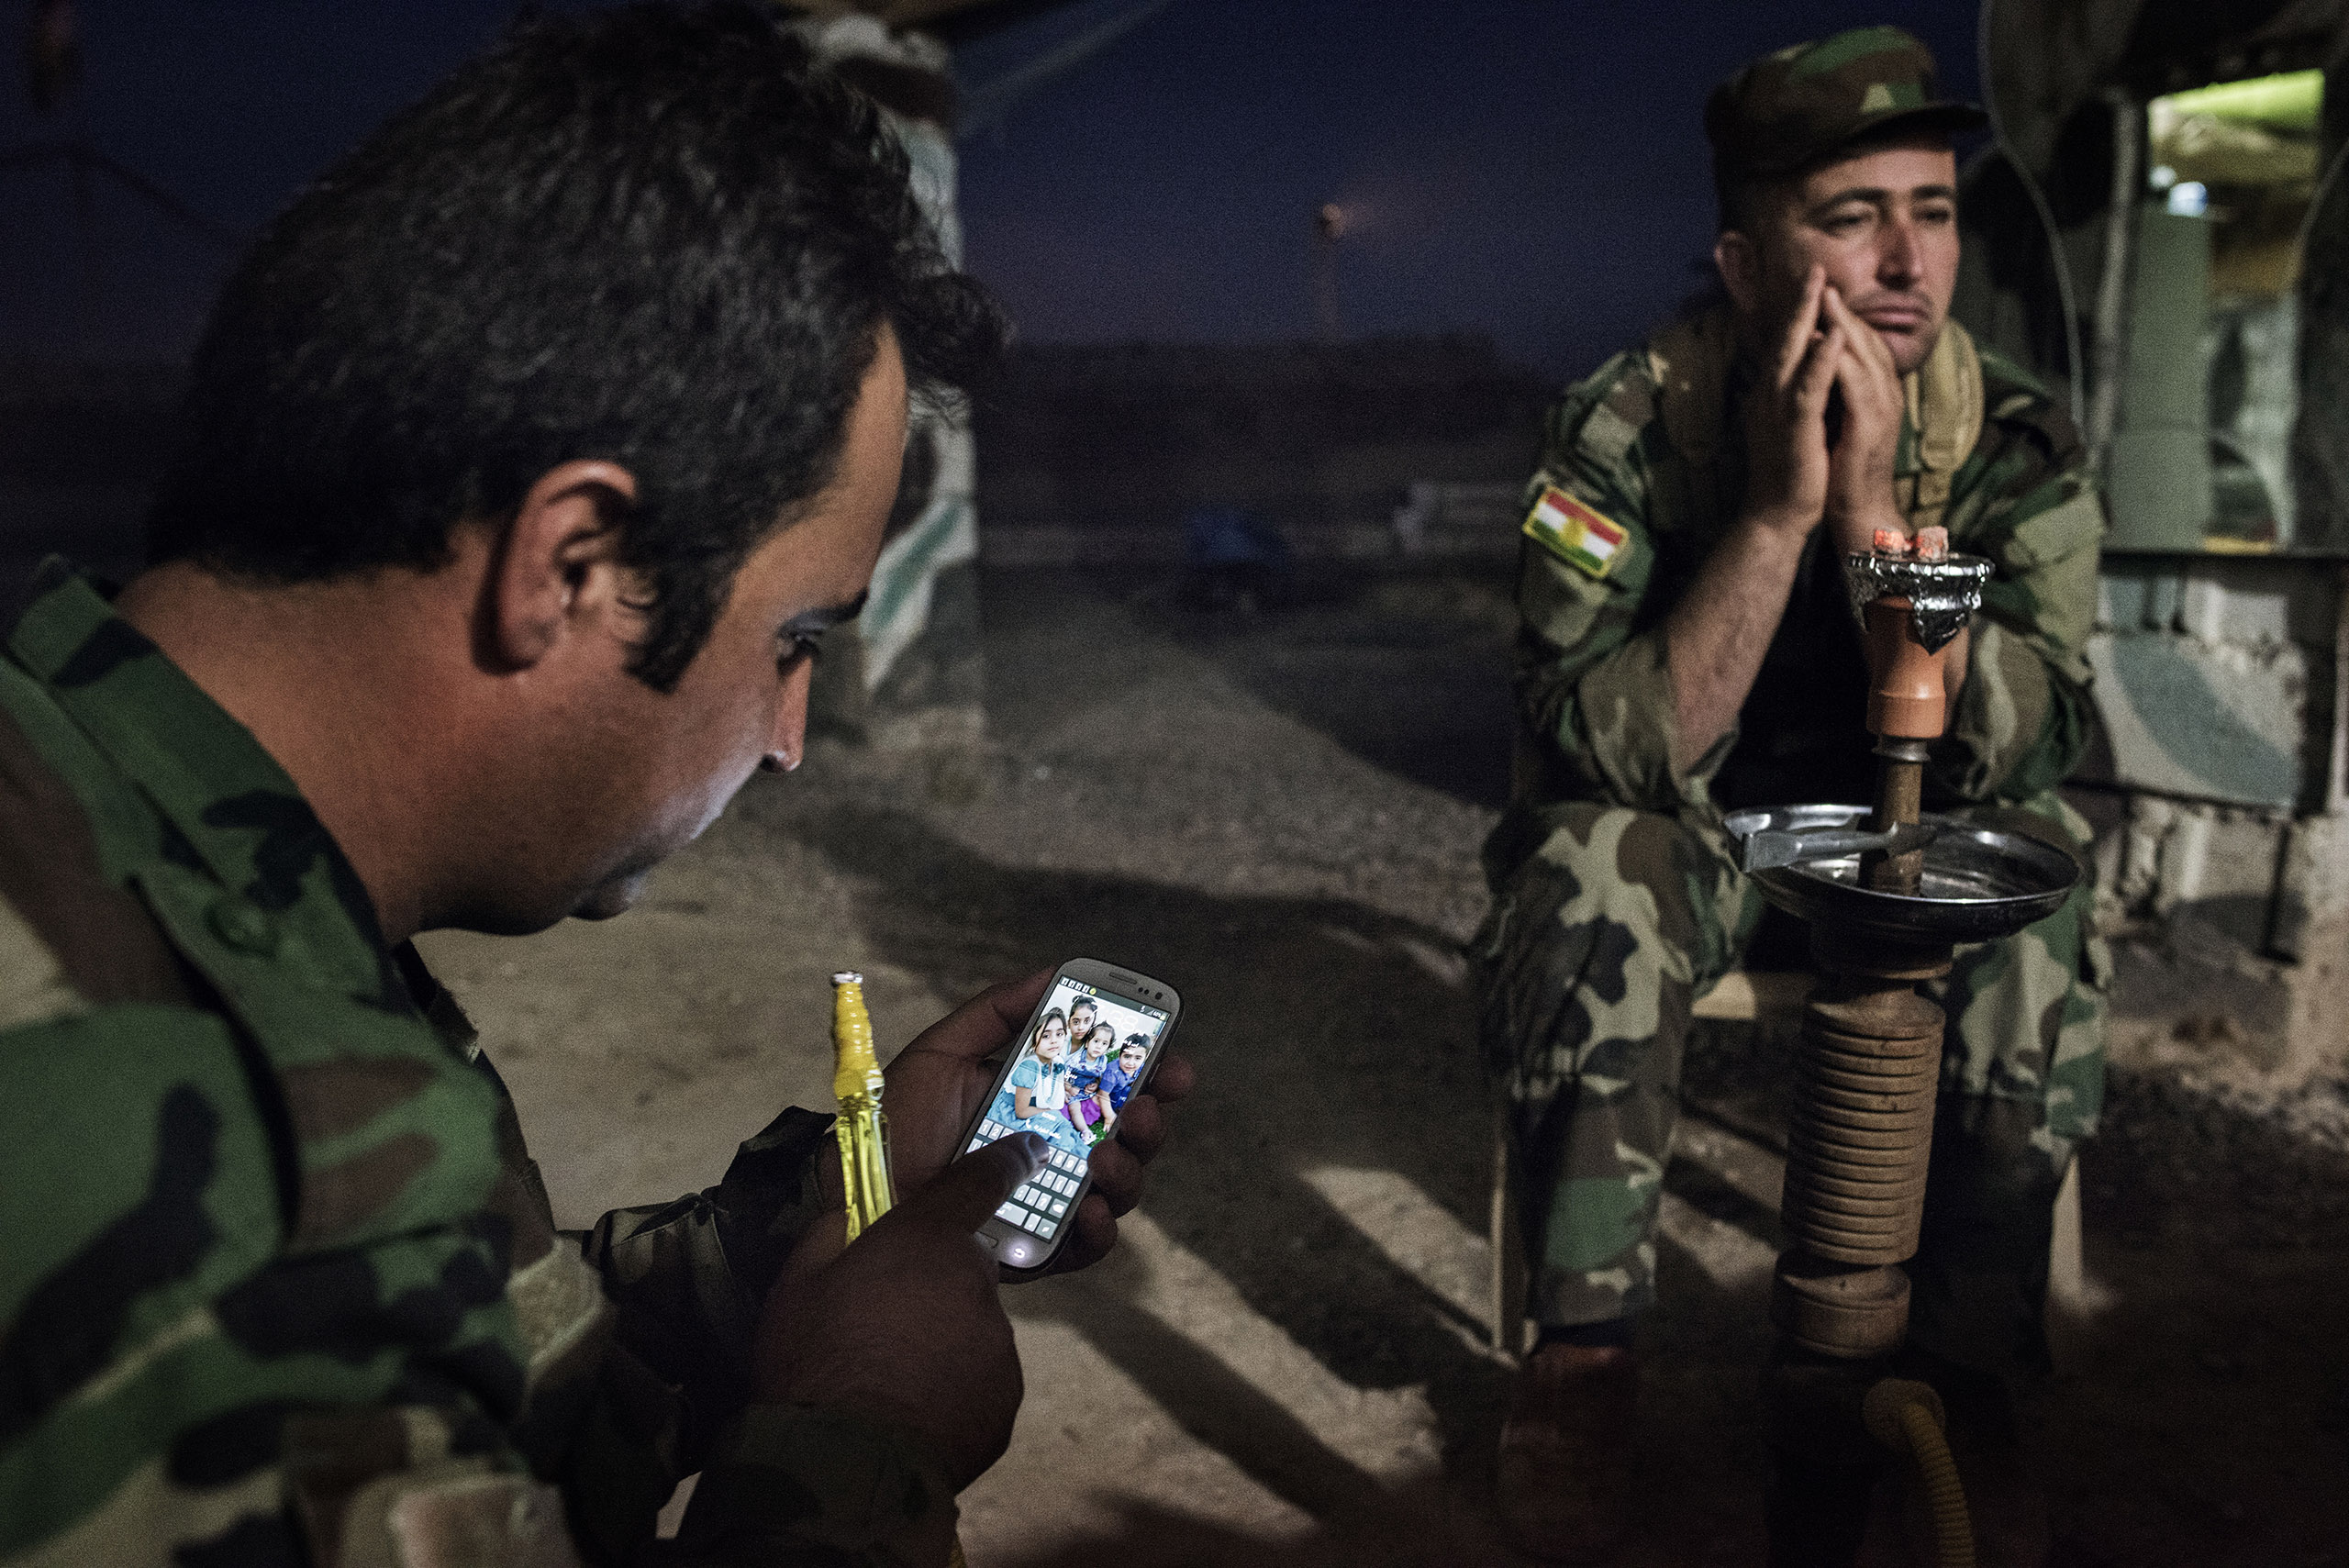 Sgt. Farsal Goran looks at his cellphone as he sits with Majid Hamid, 32, while shisha is smoked at the front outside Makhmour, Iraq, May 8, 2016.